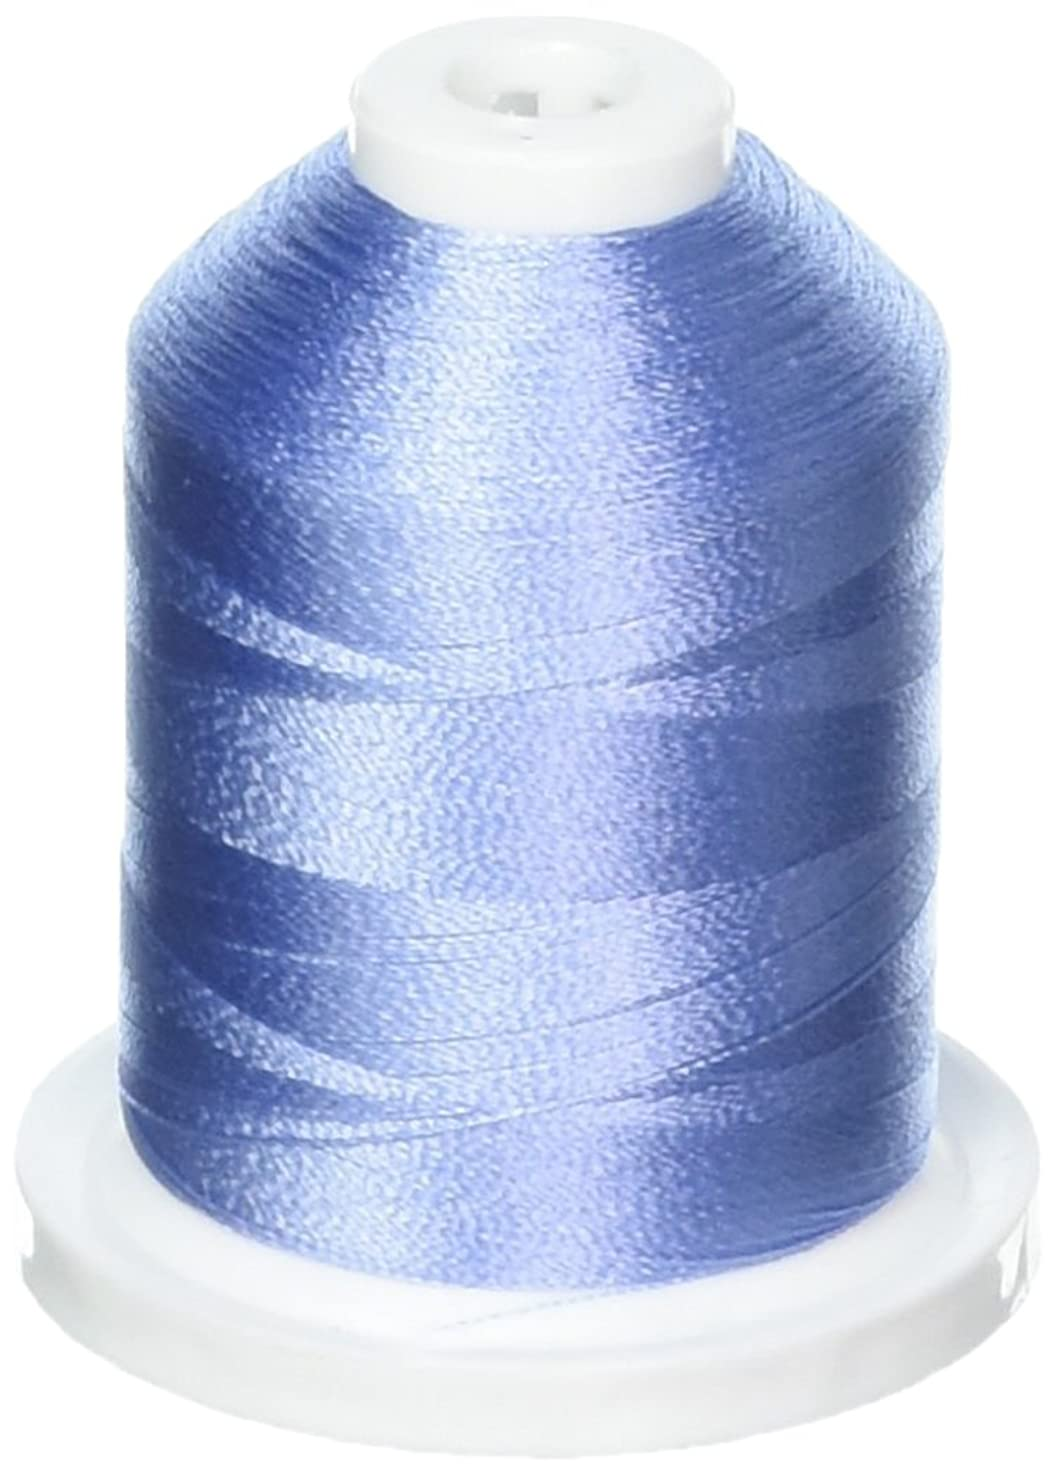 Robison-Anton Rayon Super Strength Thread, 1100-Yard, Cristy Blue